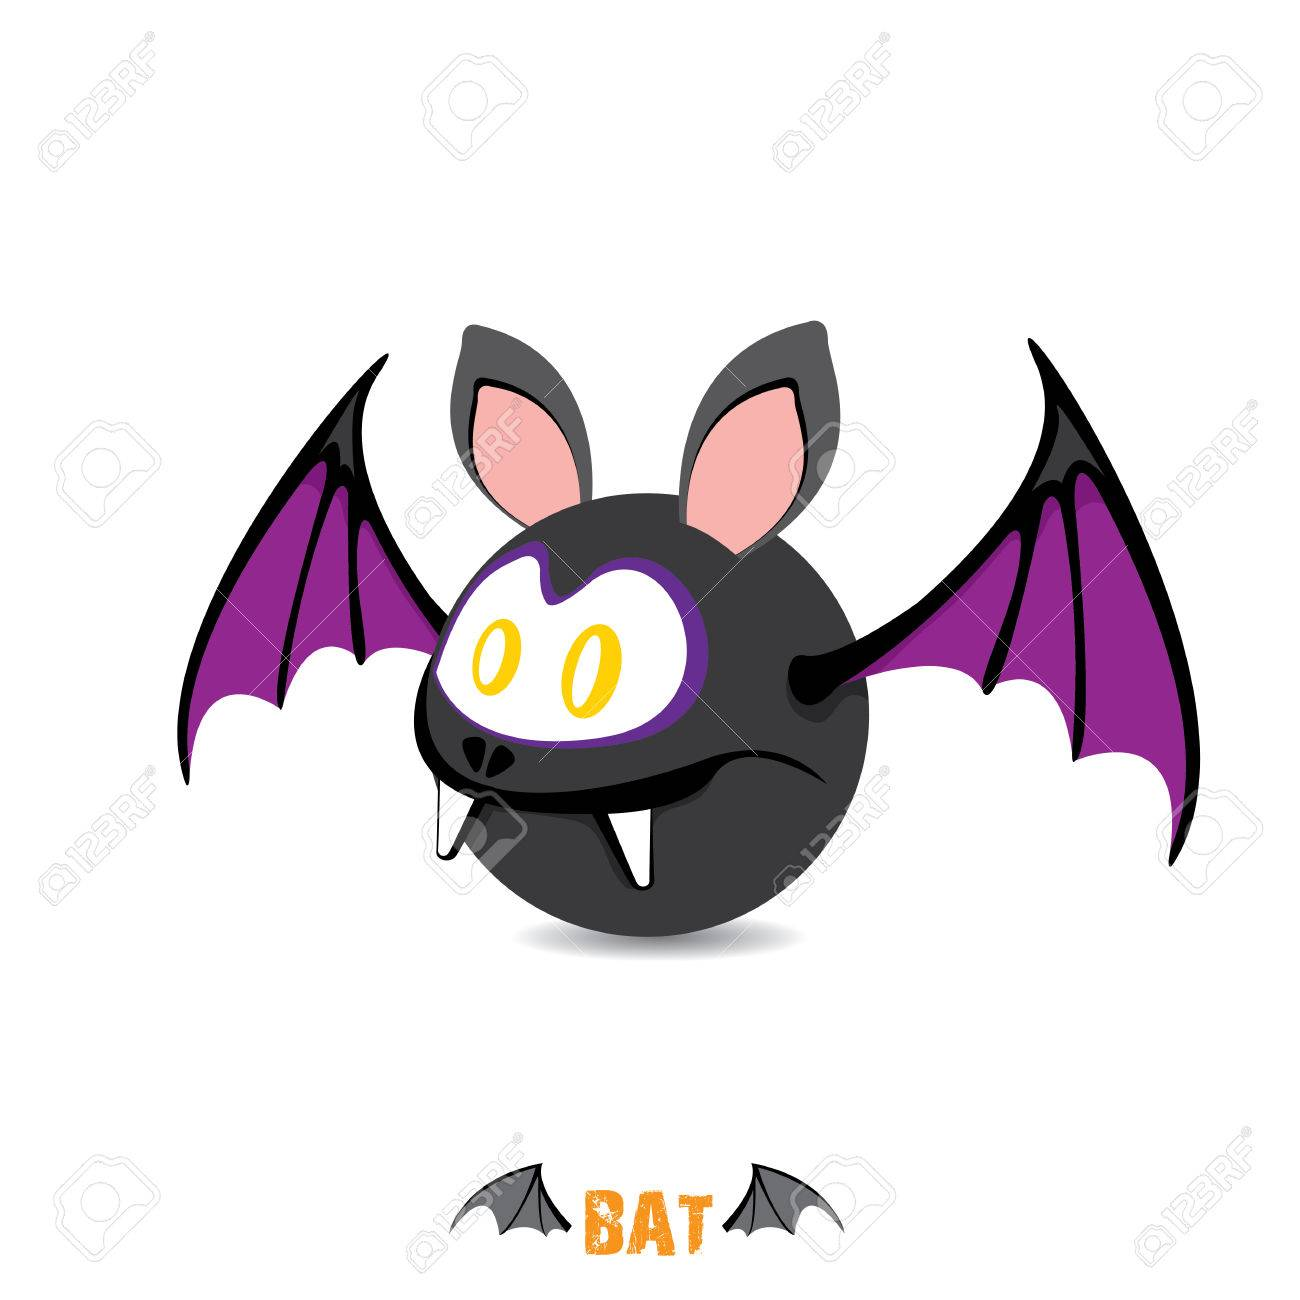 funny devil bat with wings. halloween character Stock Vector - 22576046